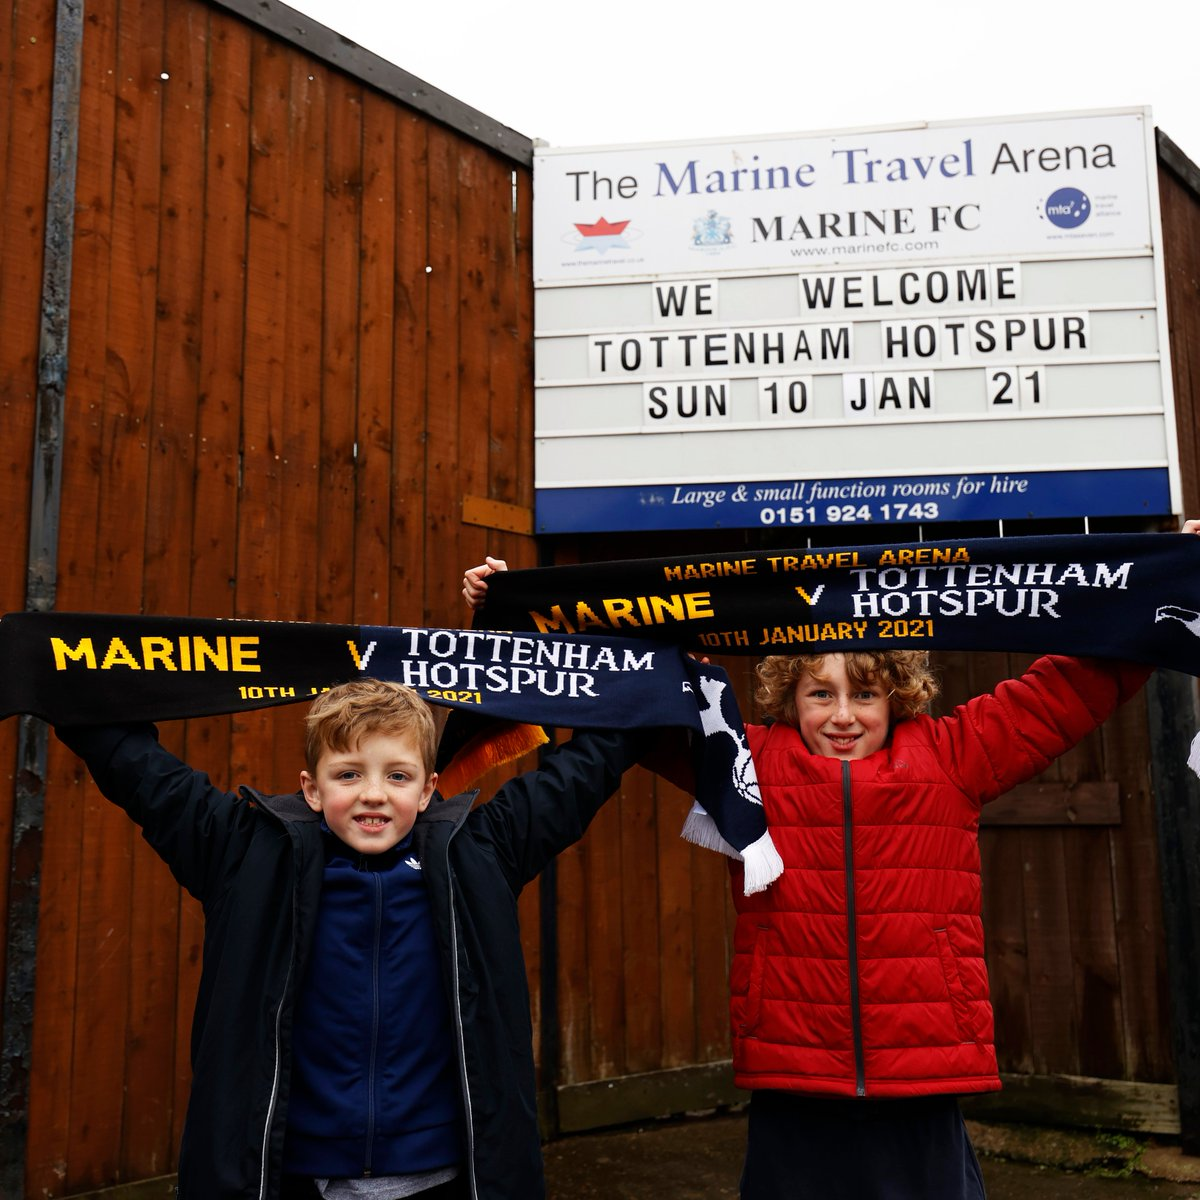 "😍 ""The whole story of the tie really has been magical""  🤝 @MarineAFC's chairman tells us that the generosity of @SpursOfficial fans has lifted the gloom and forged a special friendship ahead of the clubs' historic #FACup tie 🏆  ℹ️👉"